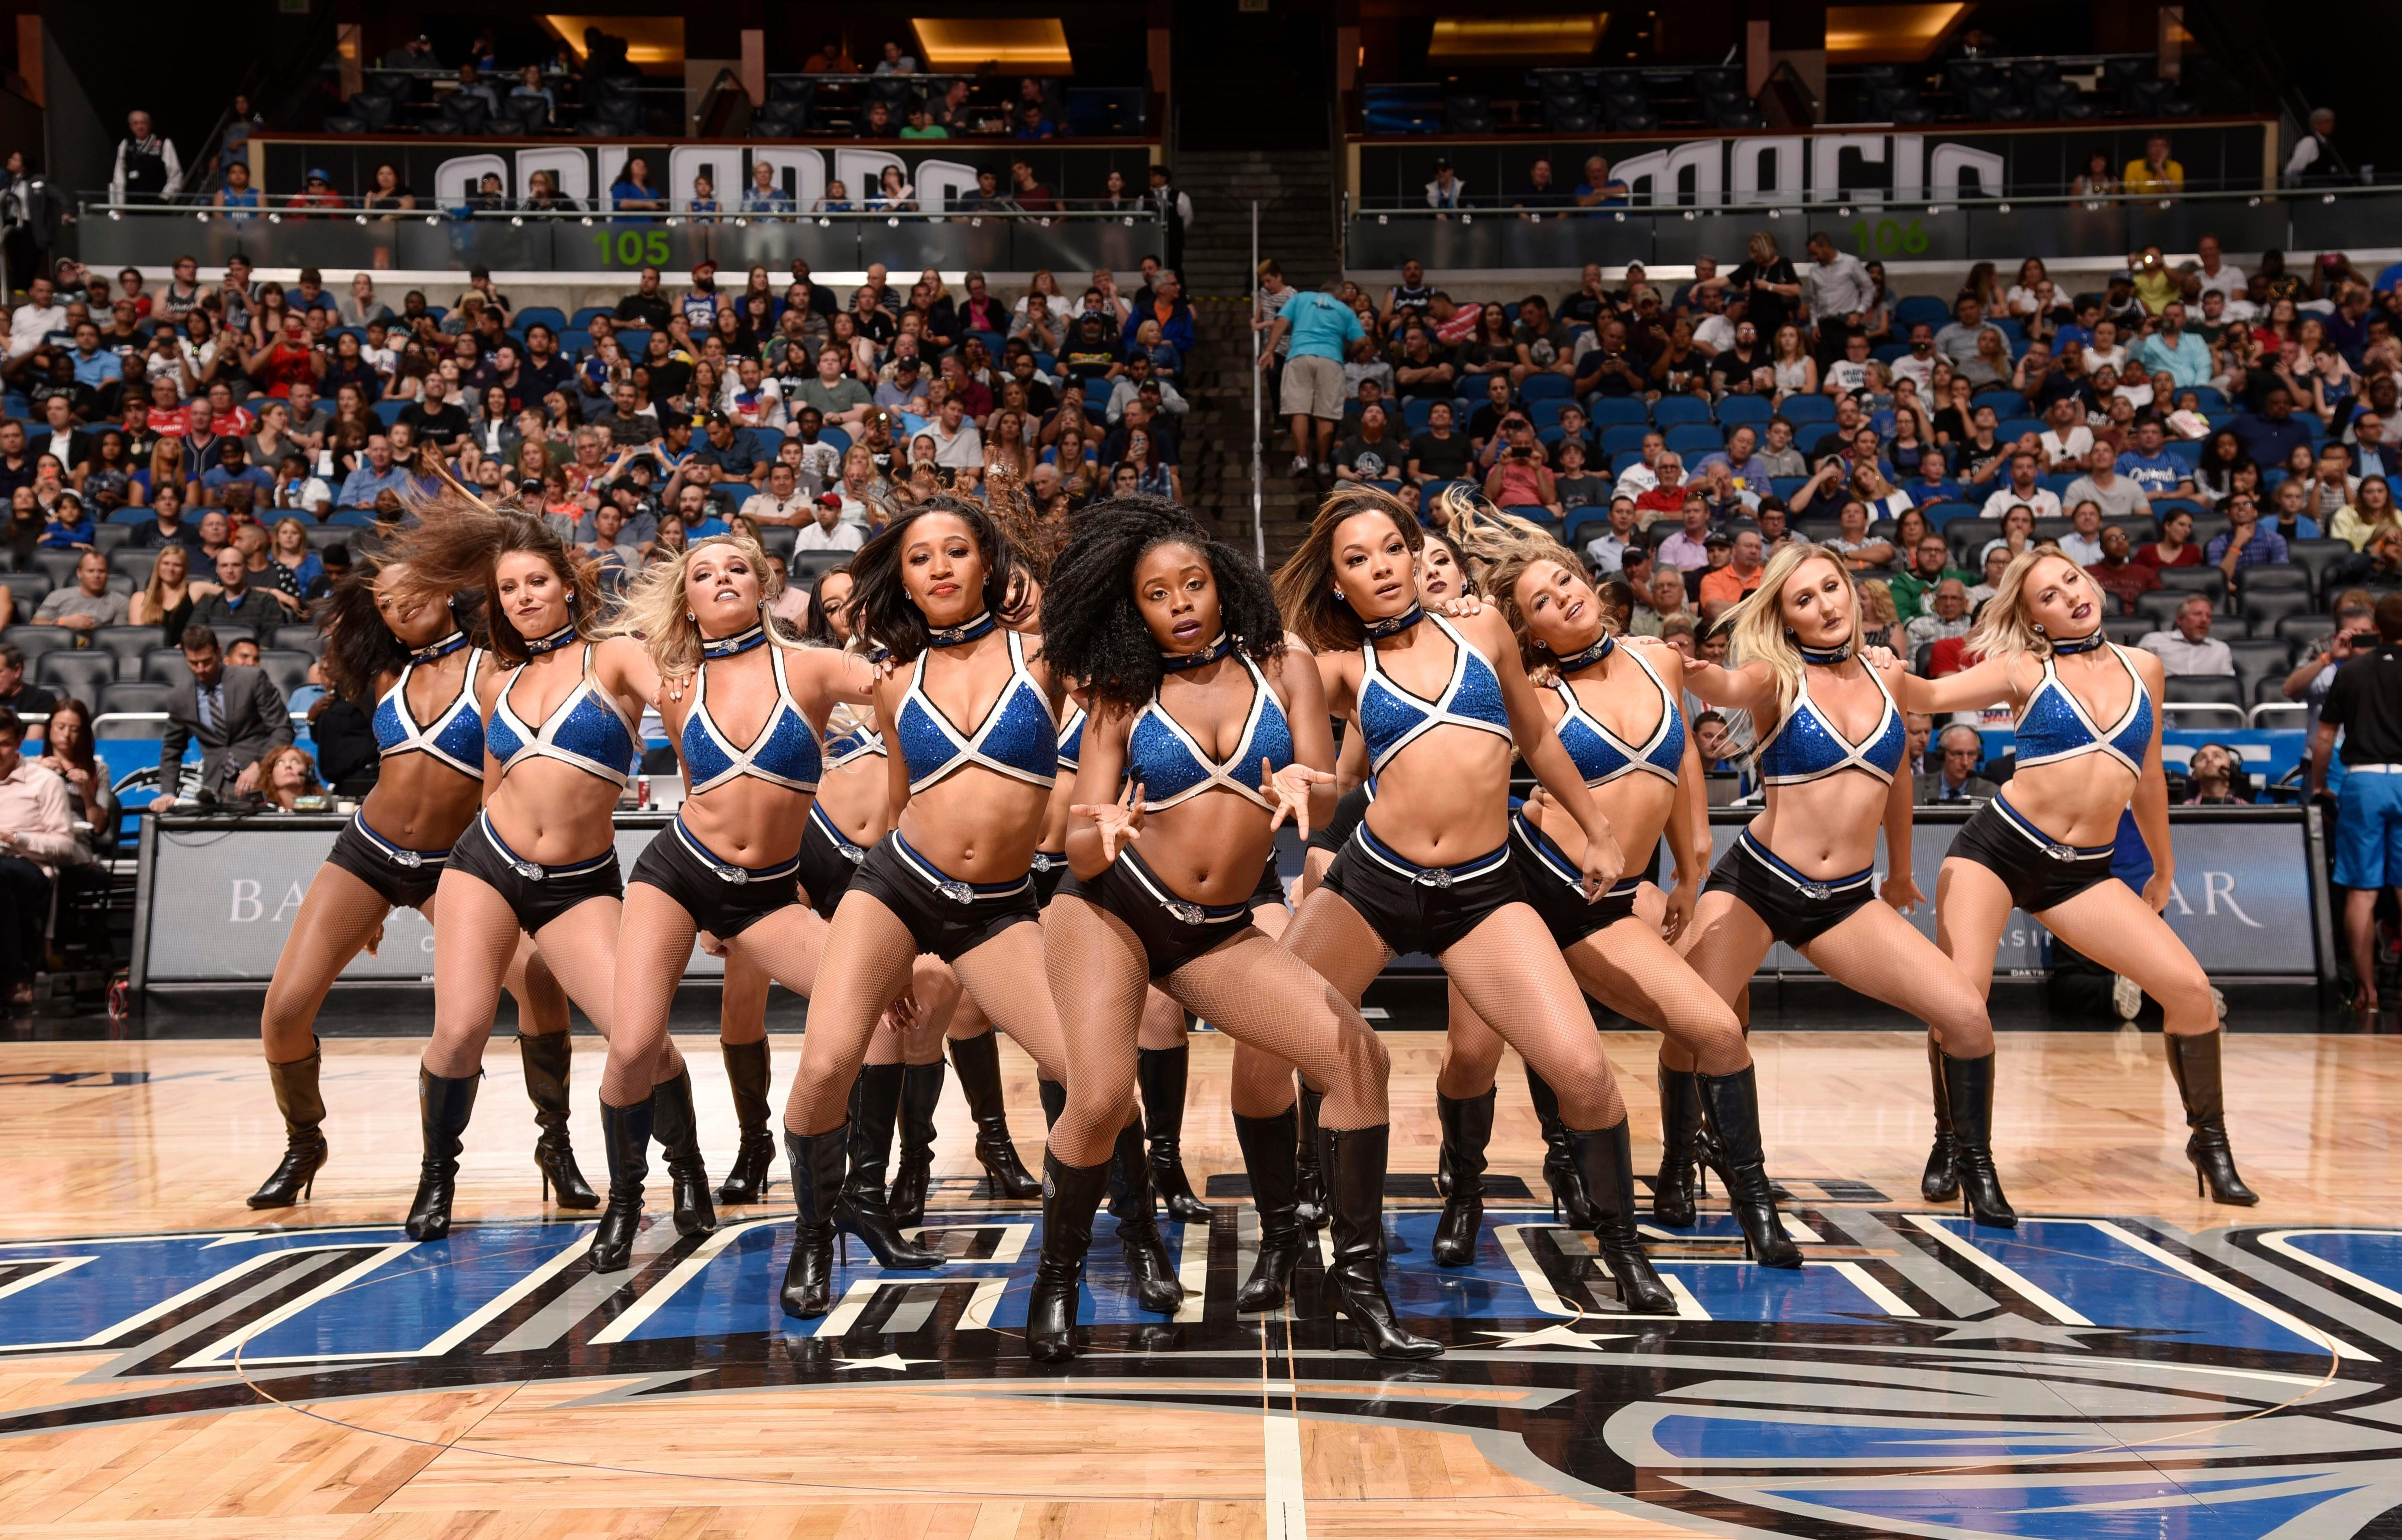 Cheerleaders from the NBA and NFL have insisted they are subject to sexual harassment from supporters regularly